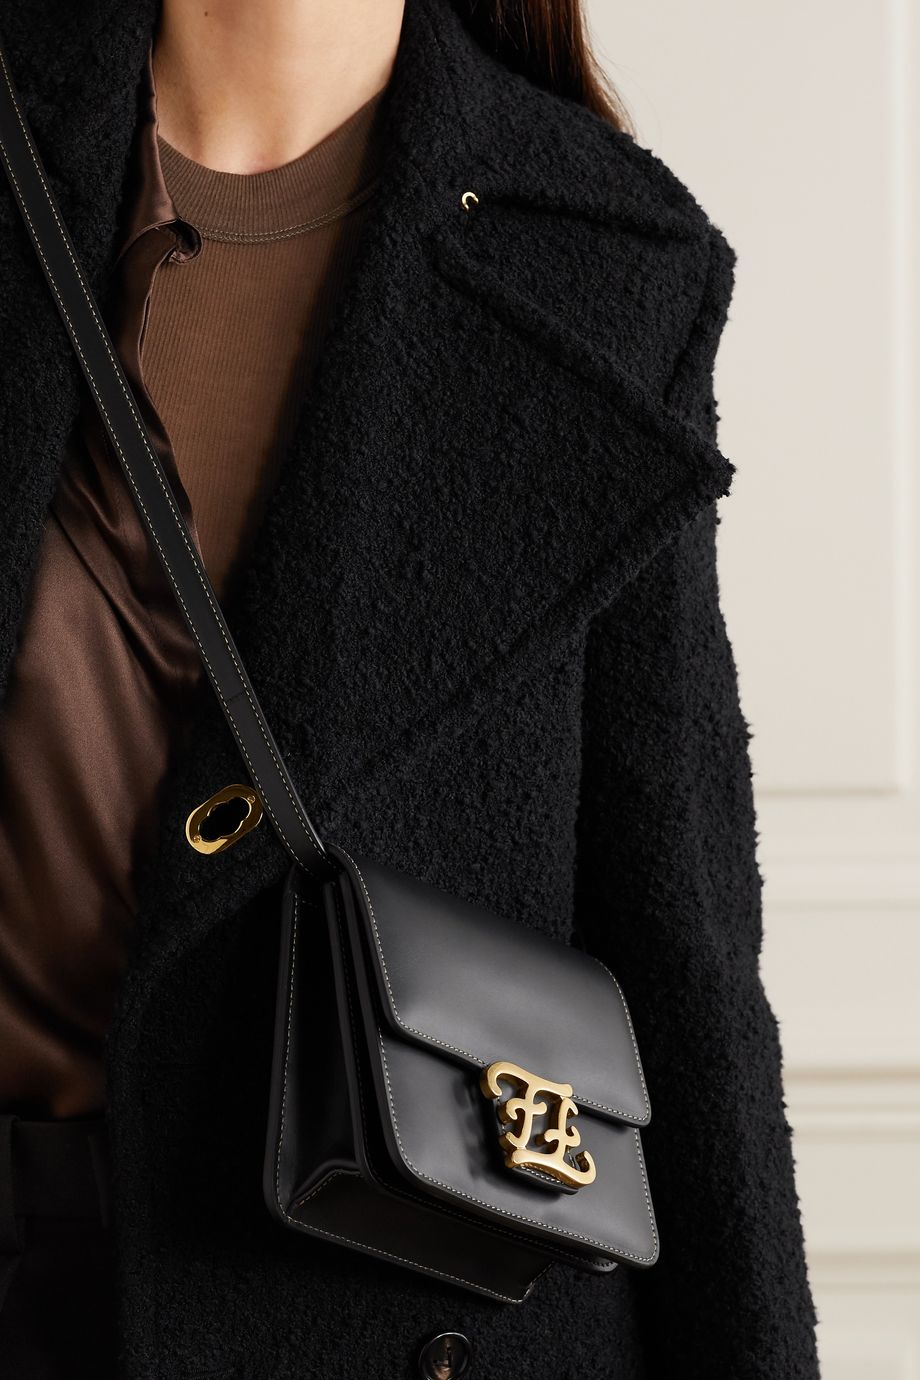 Fendi Karligraphy leather shoulder bag